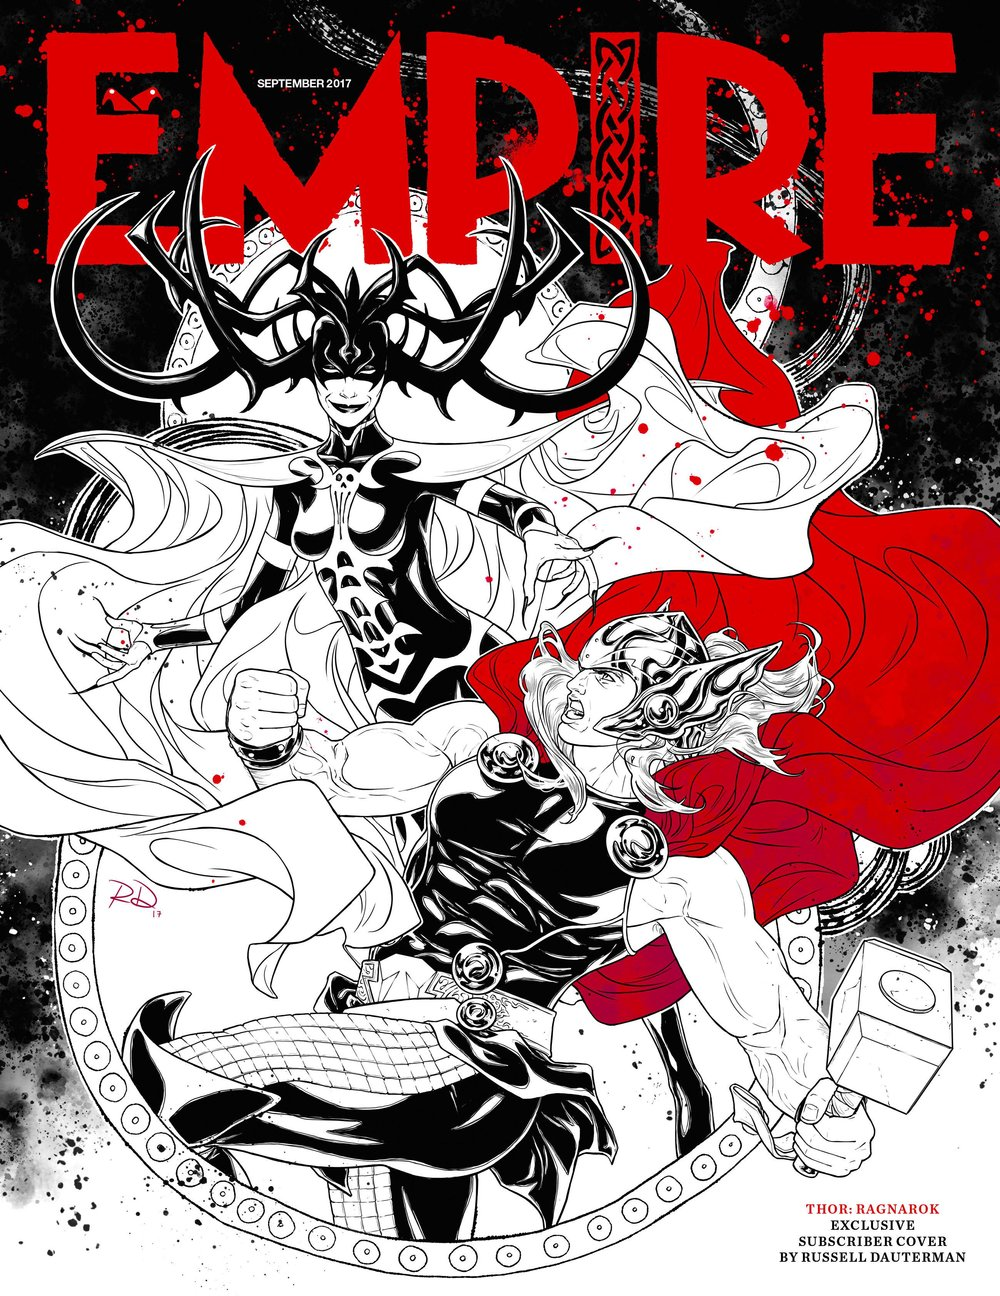 Empire subscriber cover Thor.jpg